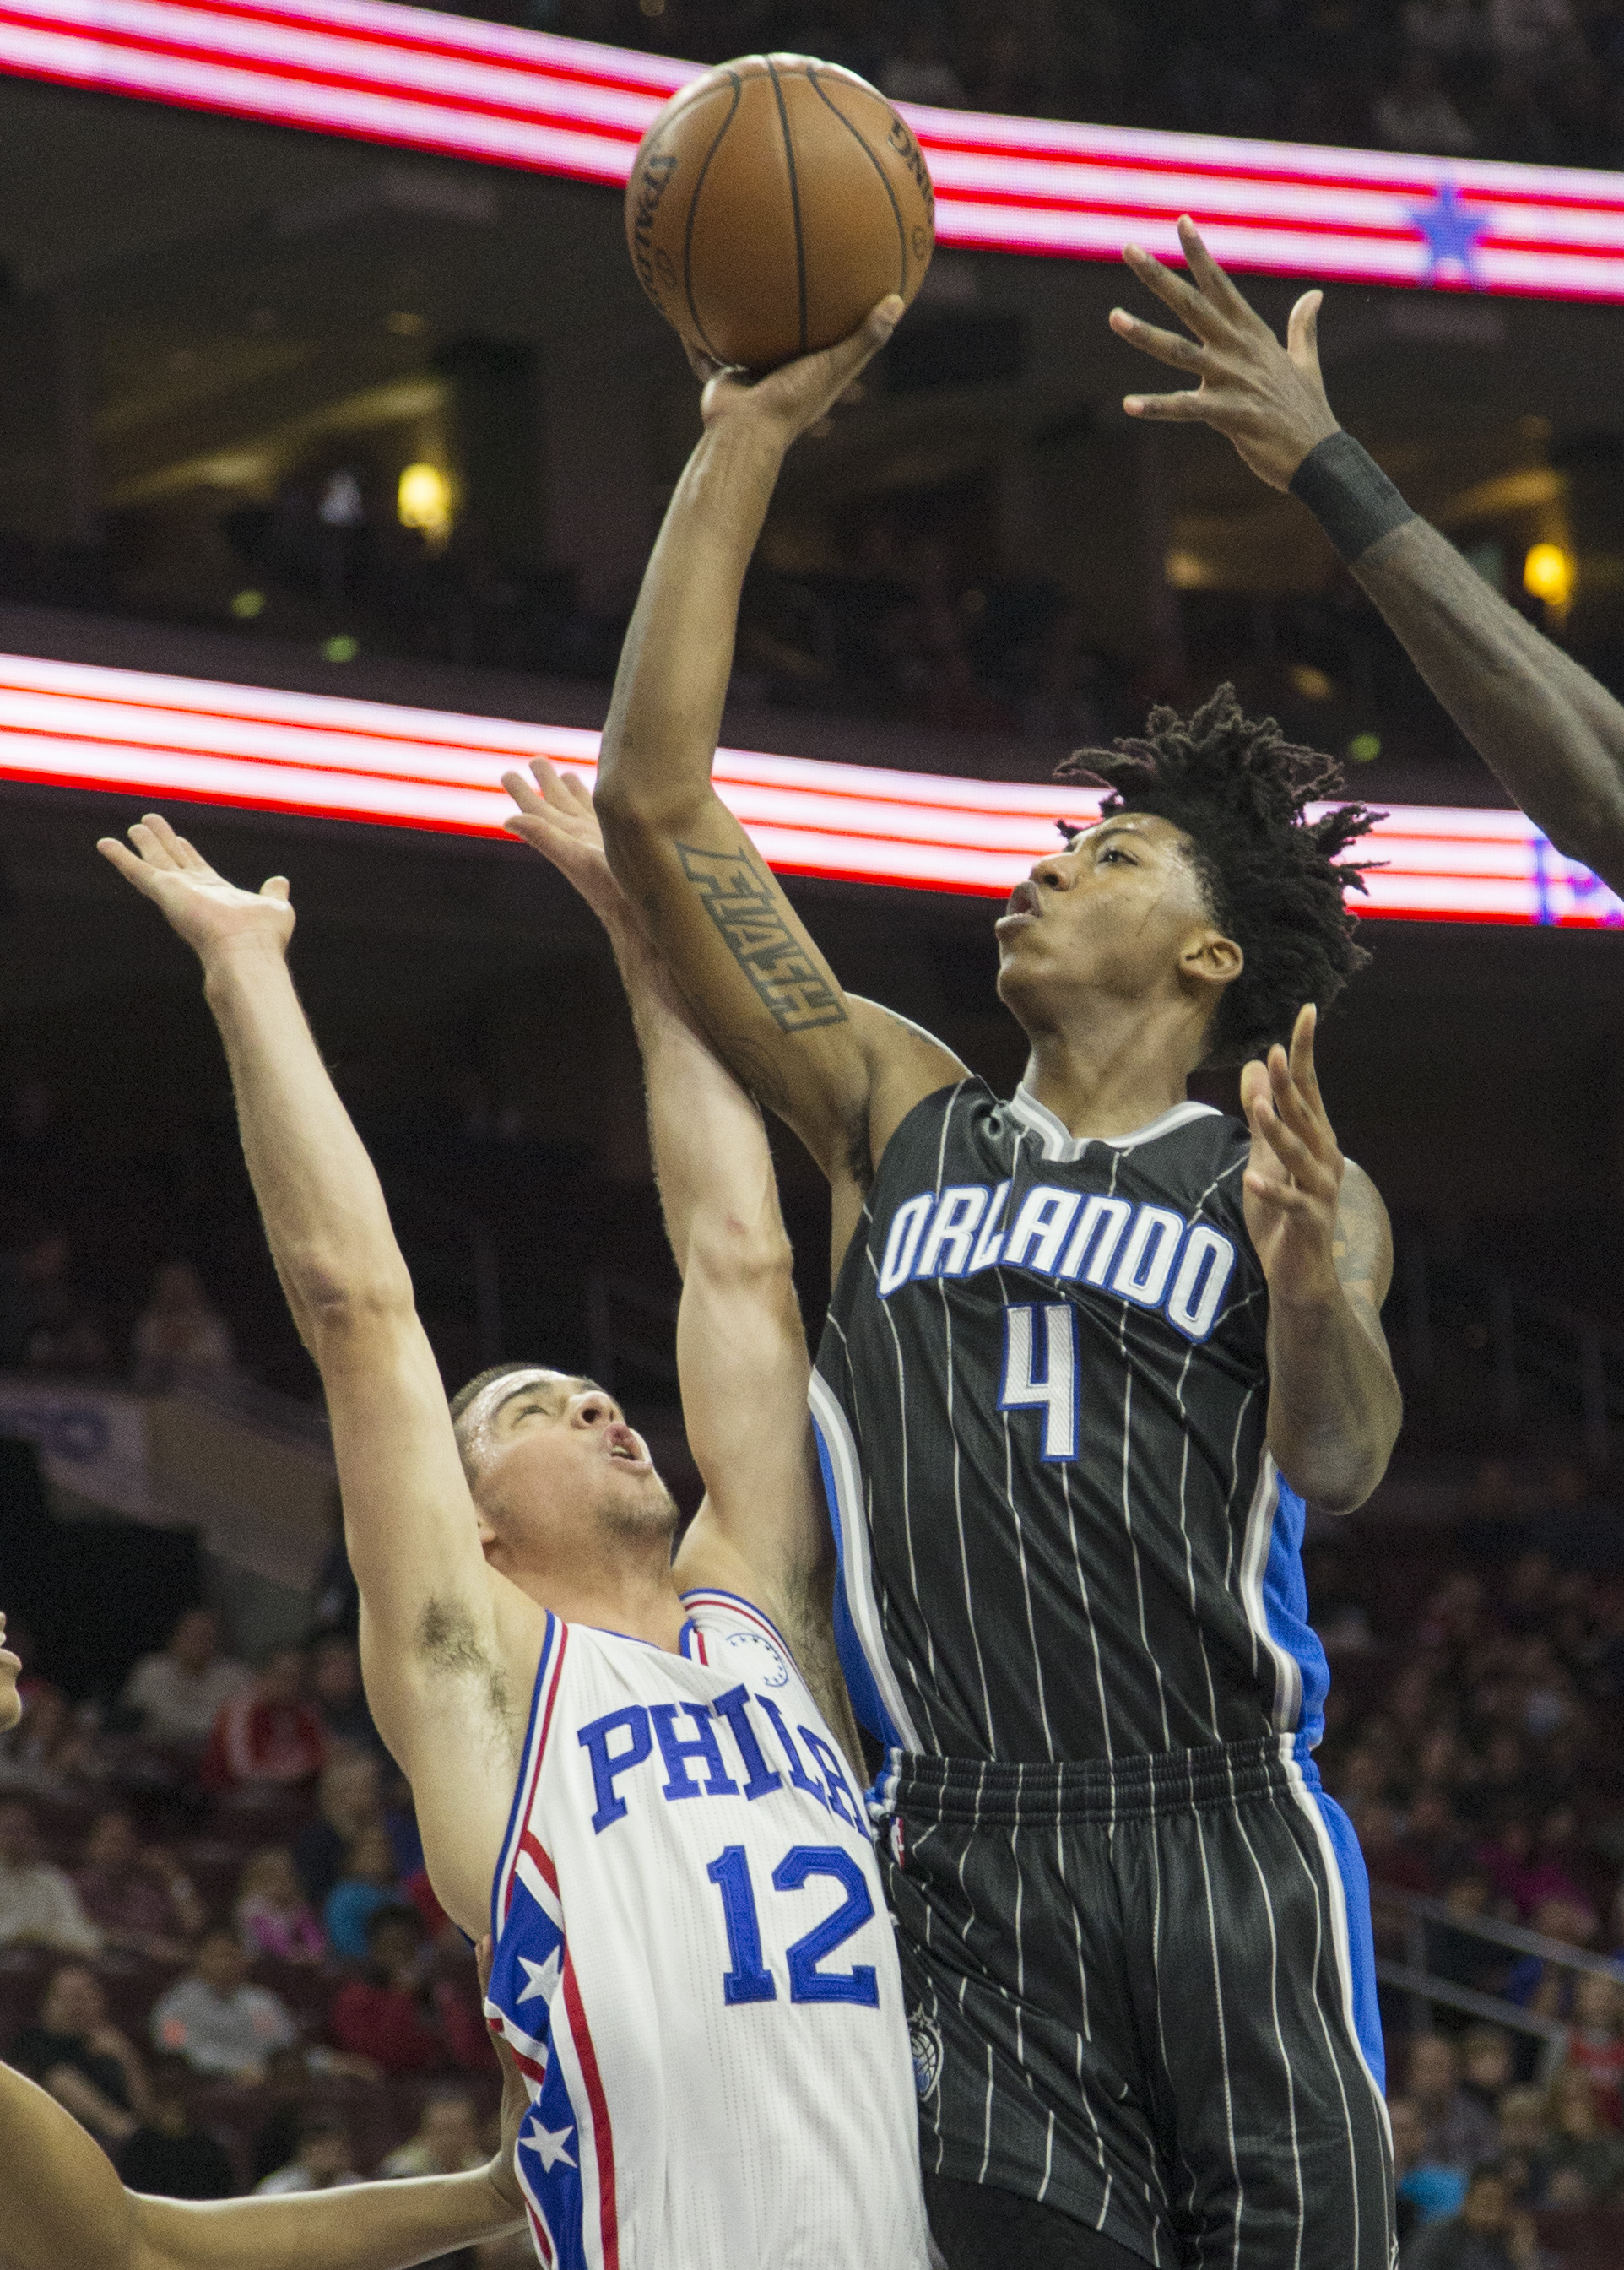 Orlando Magic guard Elfrid Payton (4) shoots over Philadelphia 76ers' T.J. McConnell (12) in the first half of an NBA basketball game, Saturday, Nov. 7, 2015, in Philadelphia. (AP Photo/Laurence Kesterson)